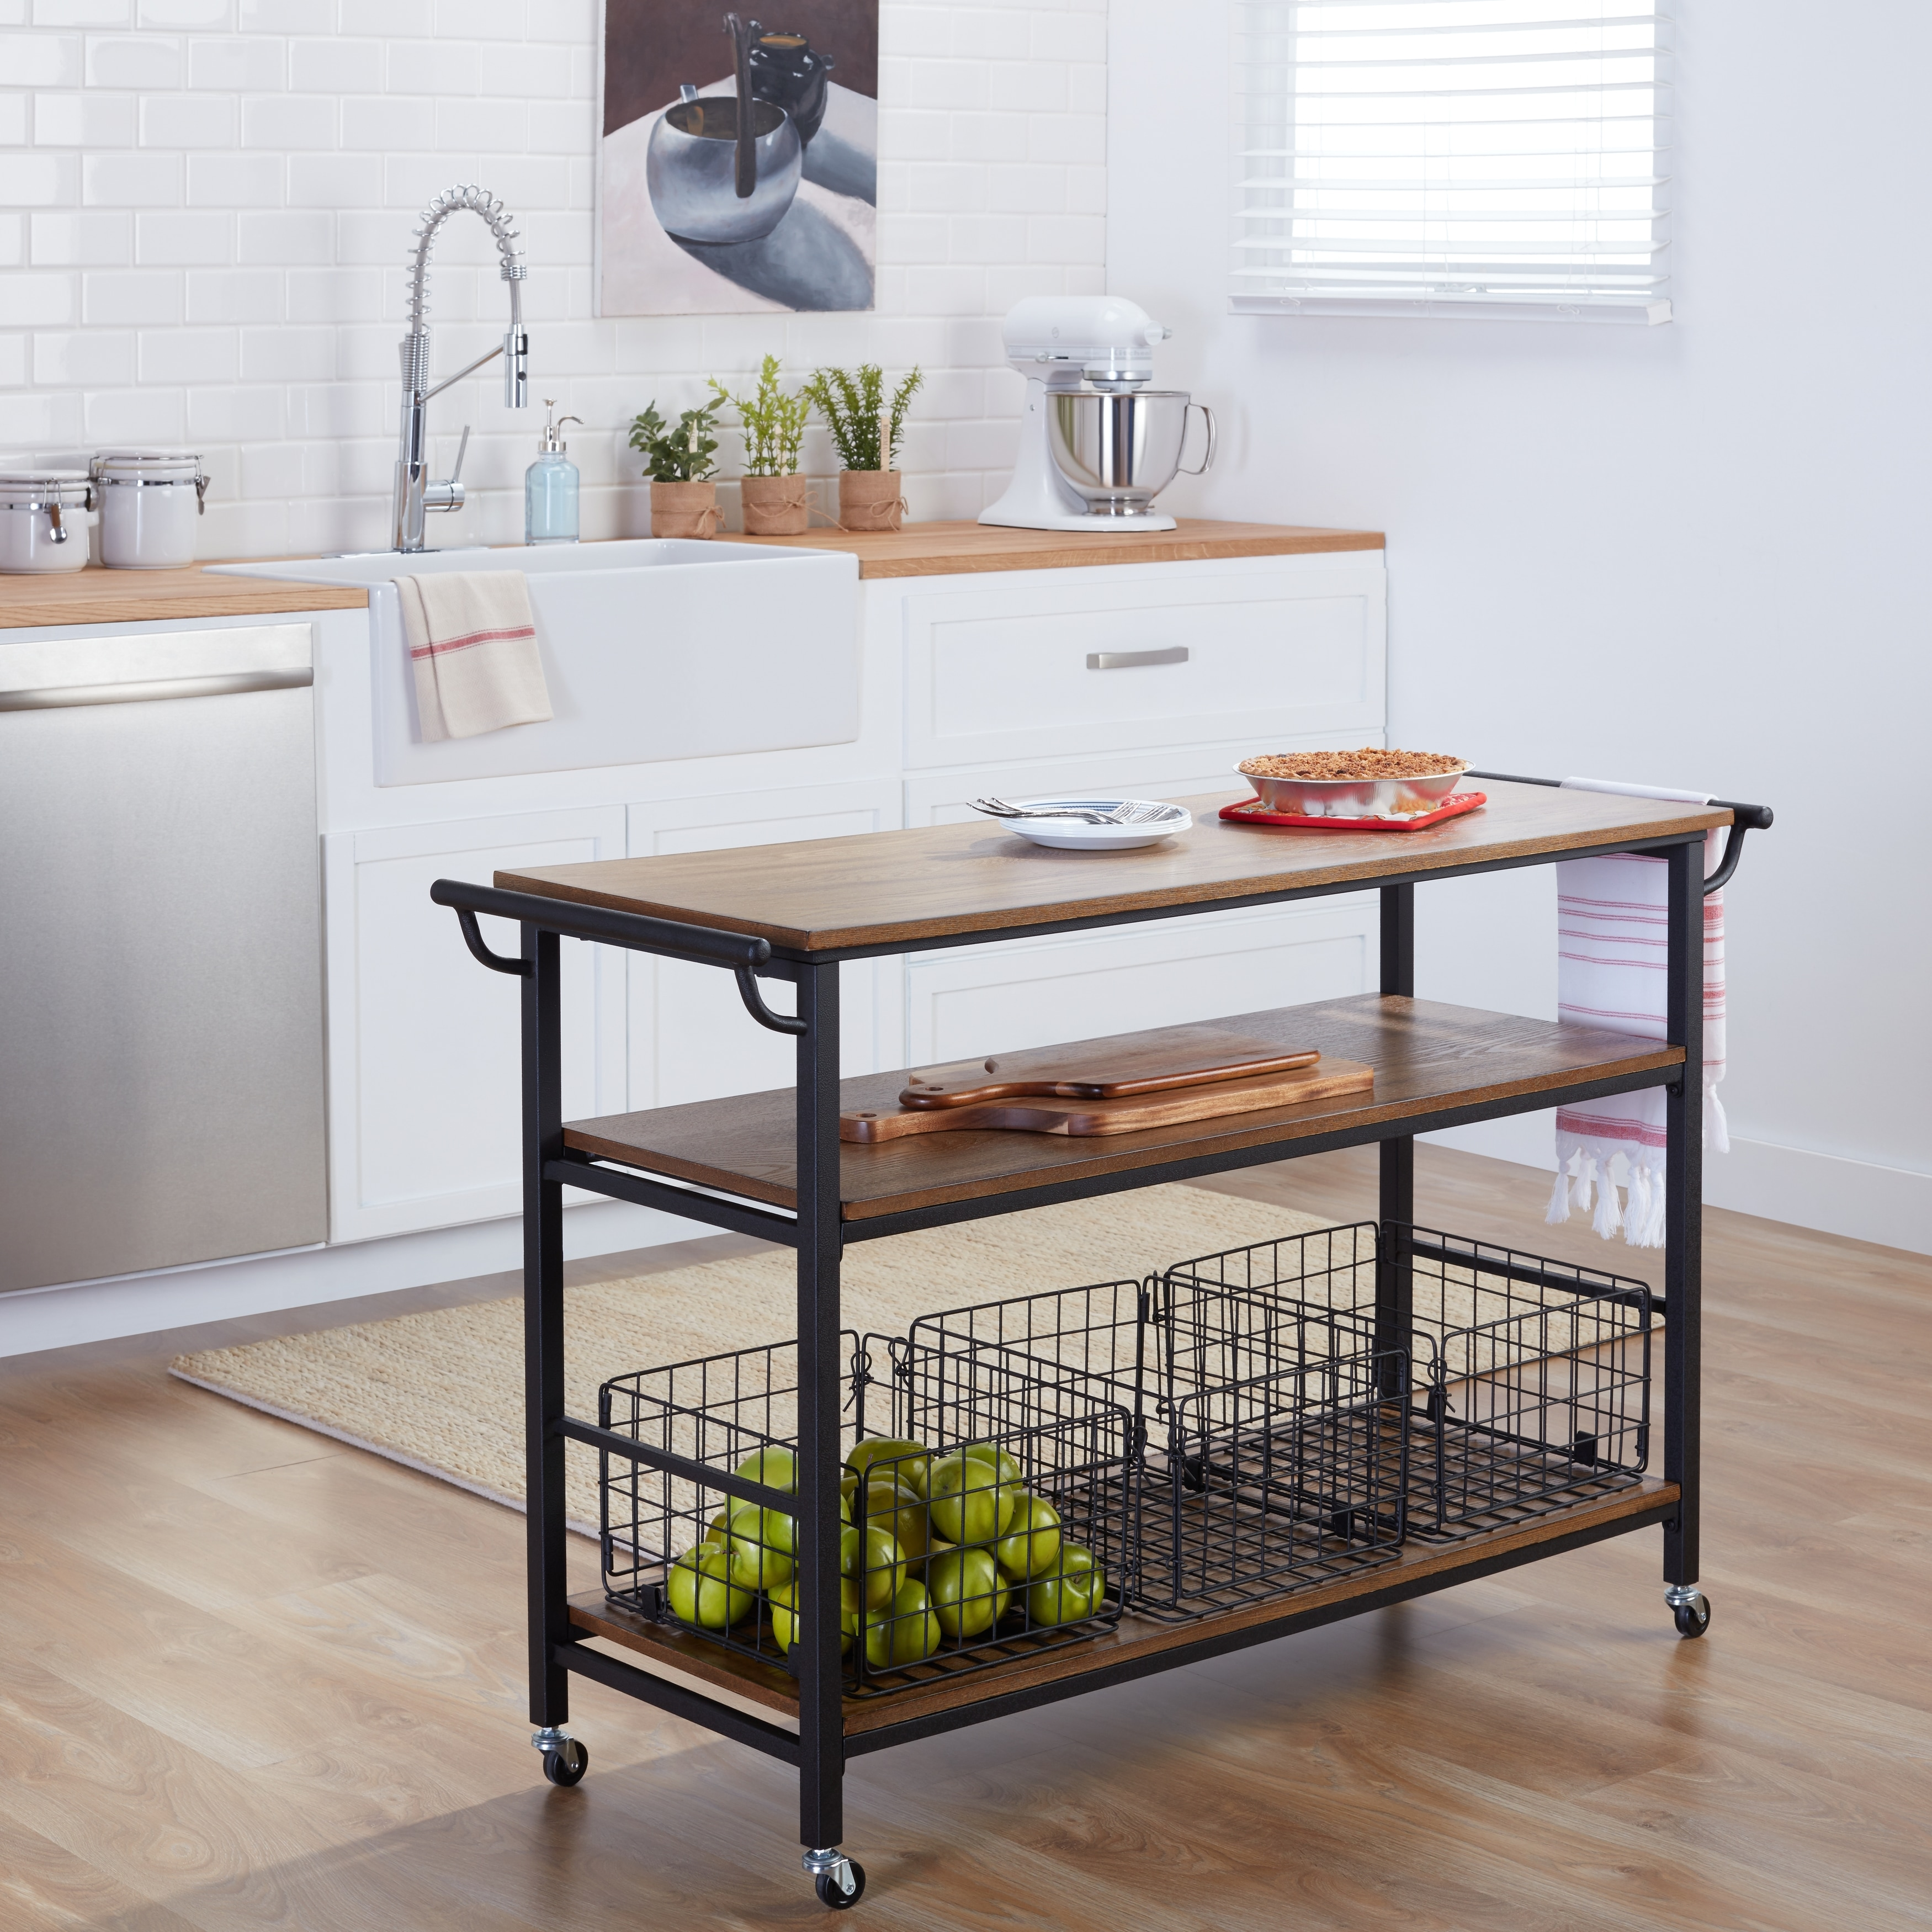 Shop Metal Frame Rustic Kitchen Cart with Wood Tabletops and Shelves ...